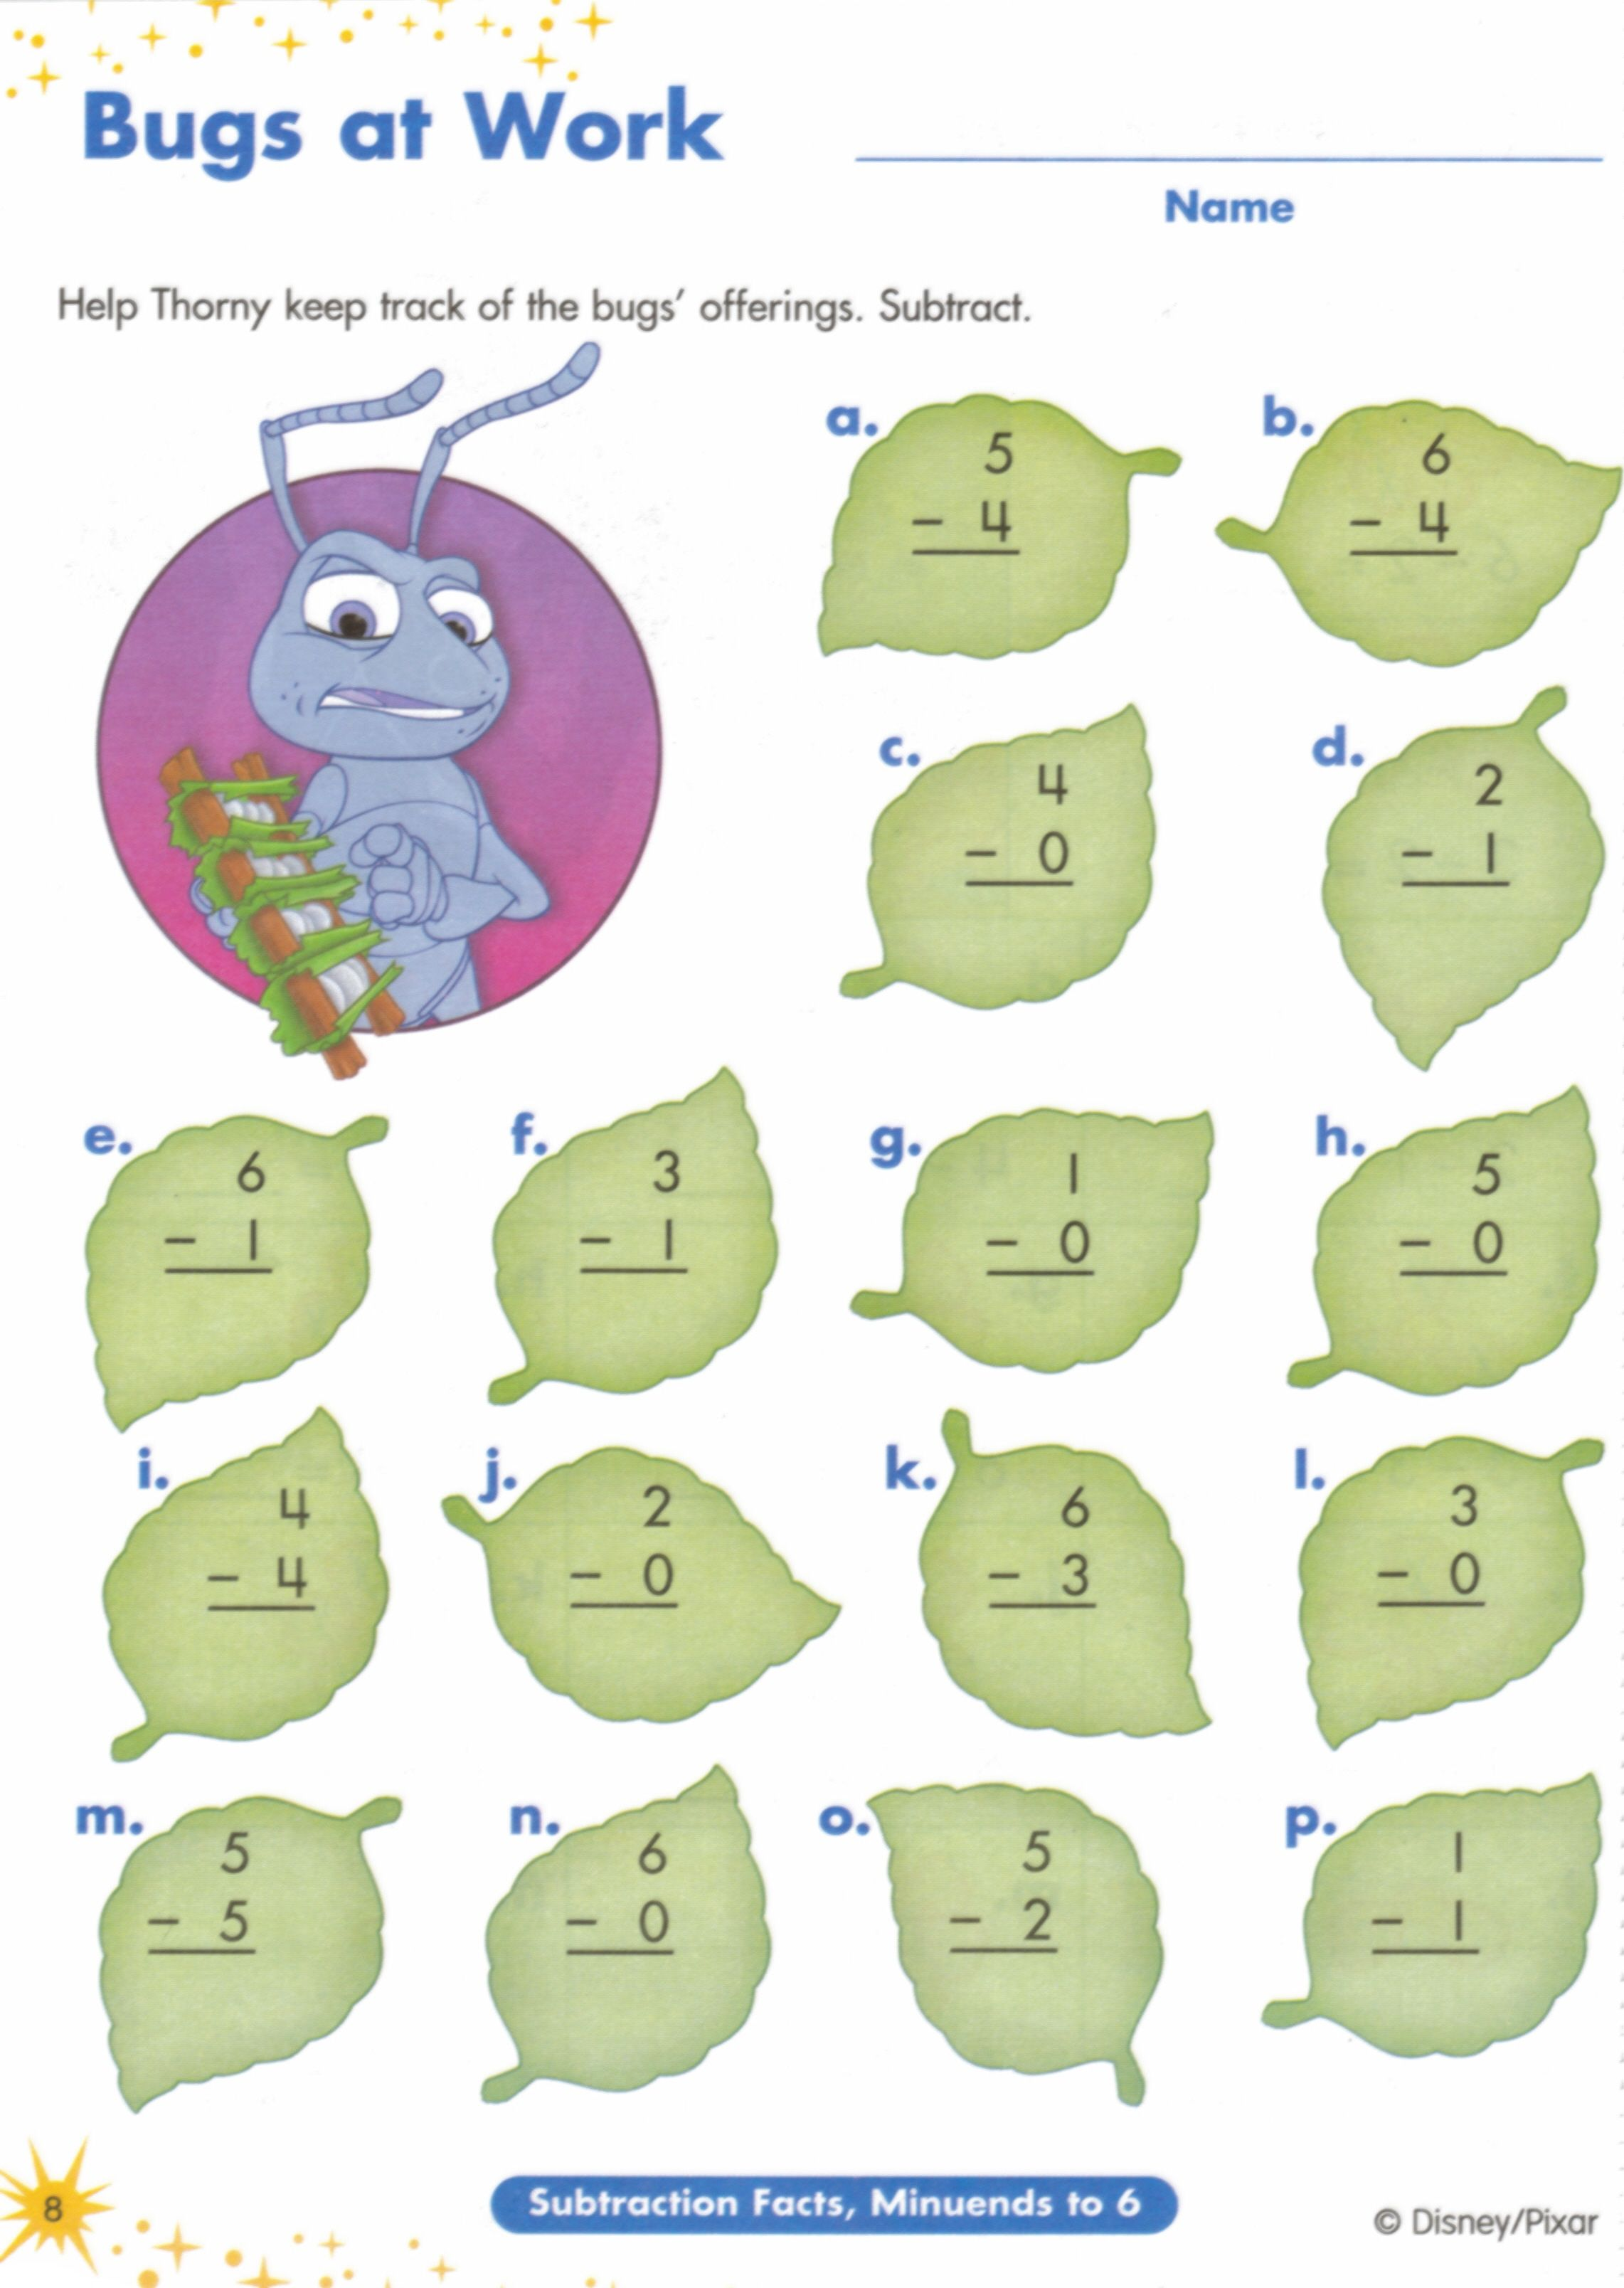 Proatmealus  Nice  Images About Worksheets On Pinterest  Fun Facts For Kids  With Remarkable  Images About Worksheets On Pinterest  Fun Facts For Kids Earth Day Worksheets And Jungles With Lovely Monohybrid Cross Problems Worksheet With Answers Also Endocrine System Worksheet In Addition What Is The Title Of This Picture Worksheet Answers And Systems Of Equations Word Problems Worksheet As Well As Main Idea And Details Worksheets Additionally Reading Comprehension Worksheets Rd Grade From Pinterestcom With Proatmealus  Remarkable  Images About Worksheets On Pinterest  Fun Facts For Kids  With Lovely  Images About Worksheets On Pinterest  Fun Facts For Kids Earth Day Worksheets And Jungles And Nice Monohybrid Cross Problems Worksheet With Answers Also Endocrine System Worksheet In Addition What Is The Title Of This Picture Worksheet Answers From Pinterestcom